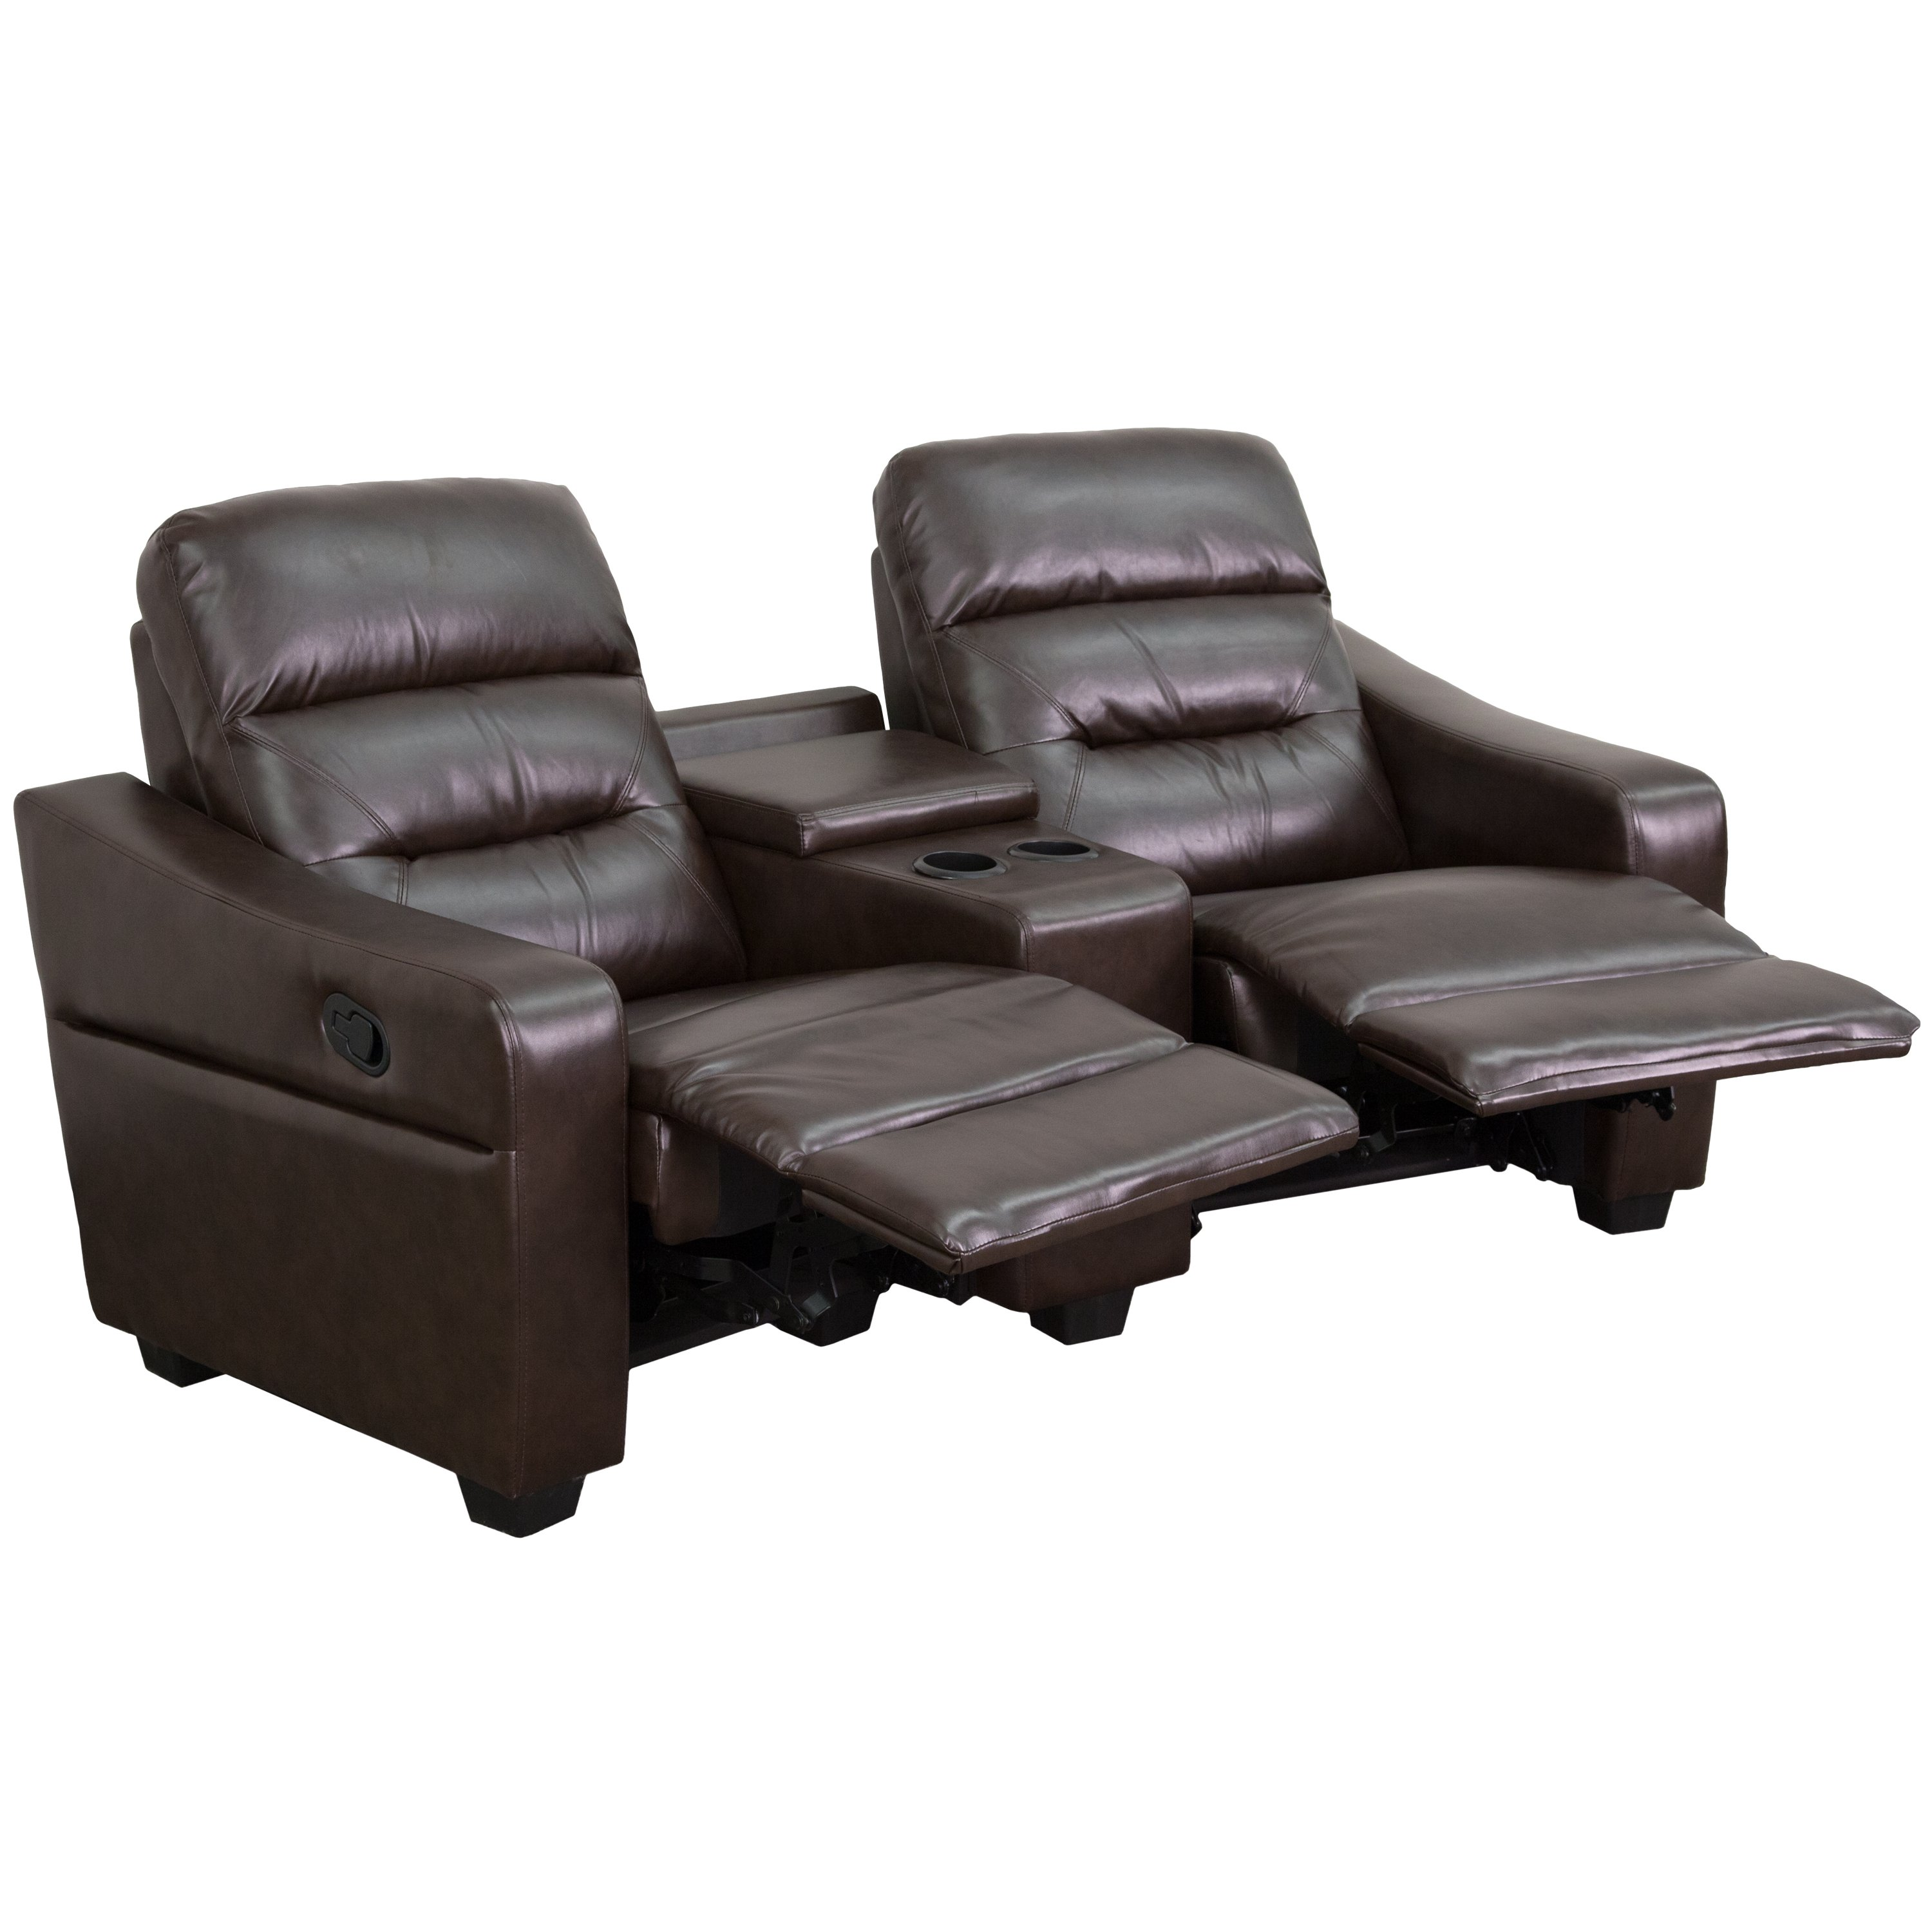 B home series seat reclining brown leather theater seating unit